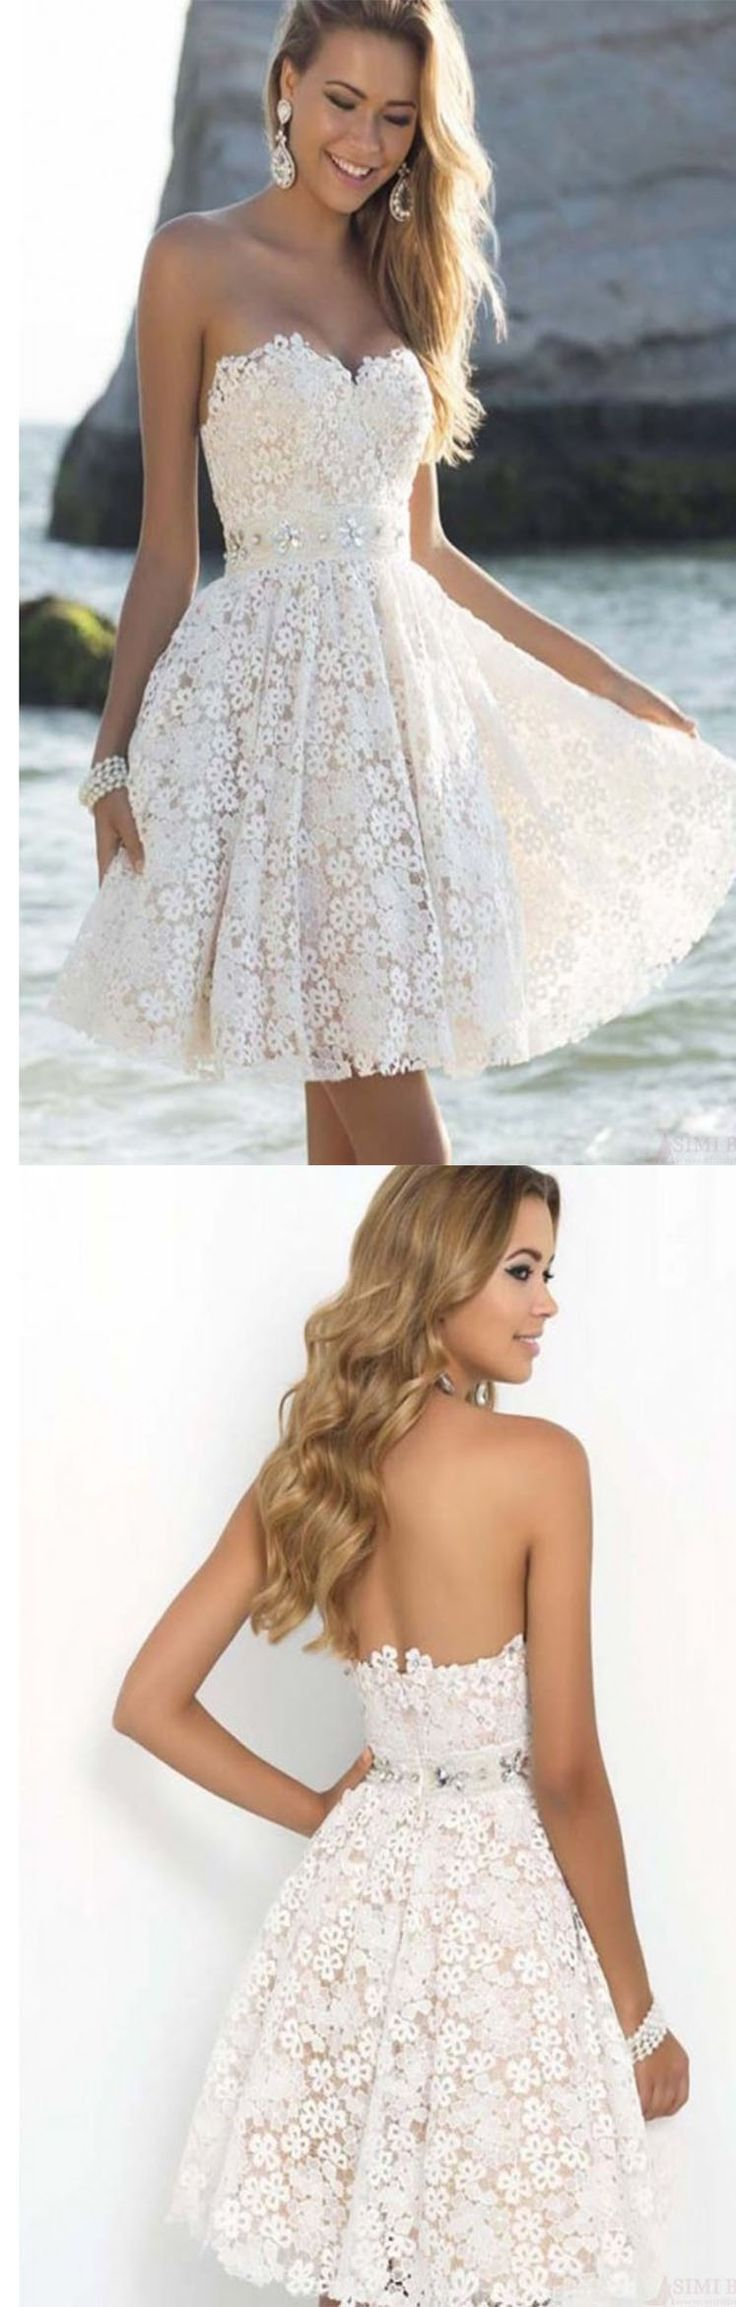 Charming Sweet Strapless Knee Length Short Homecoming Prom Party Dresses                                                                                                                                                     More